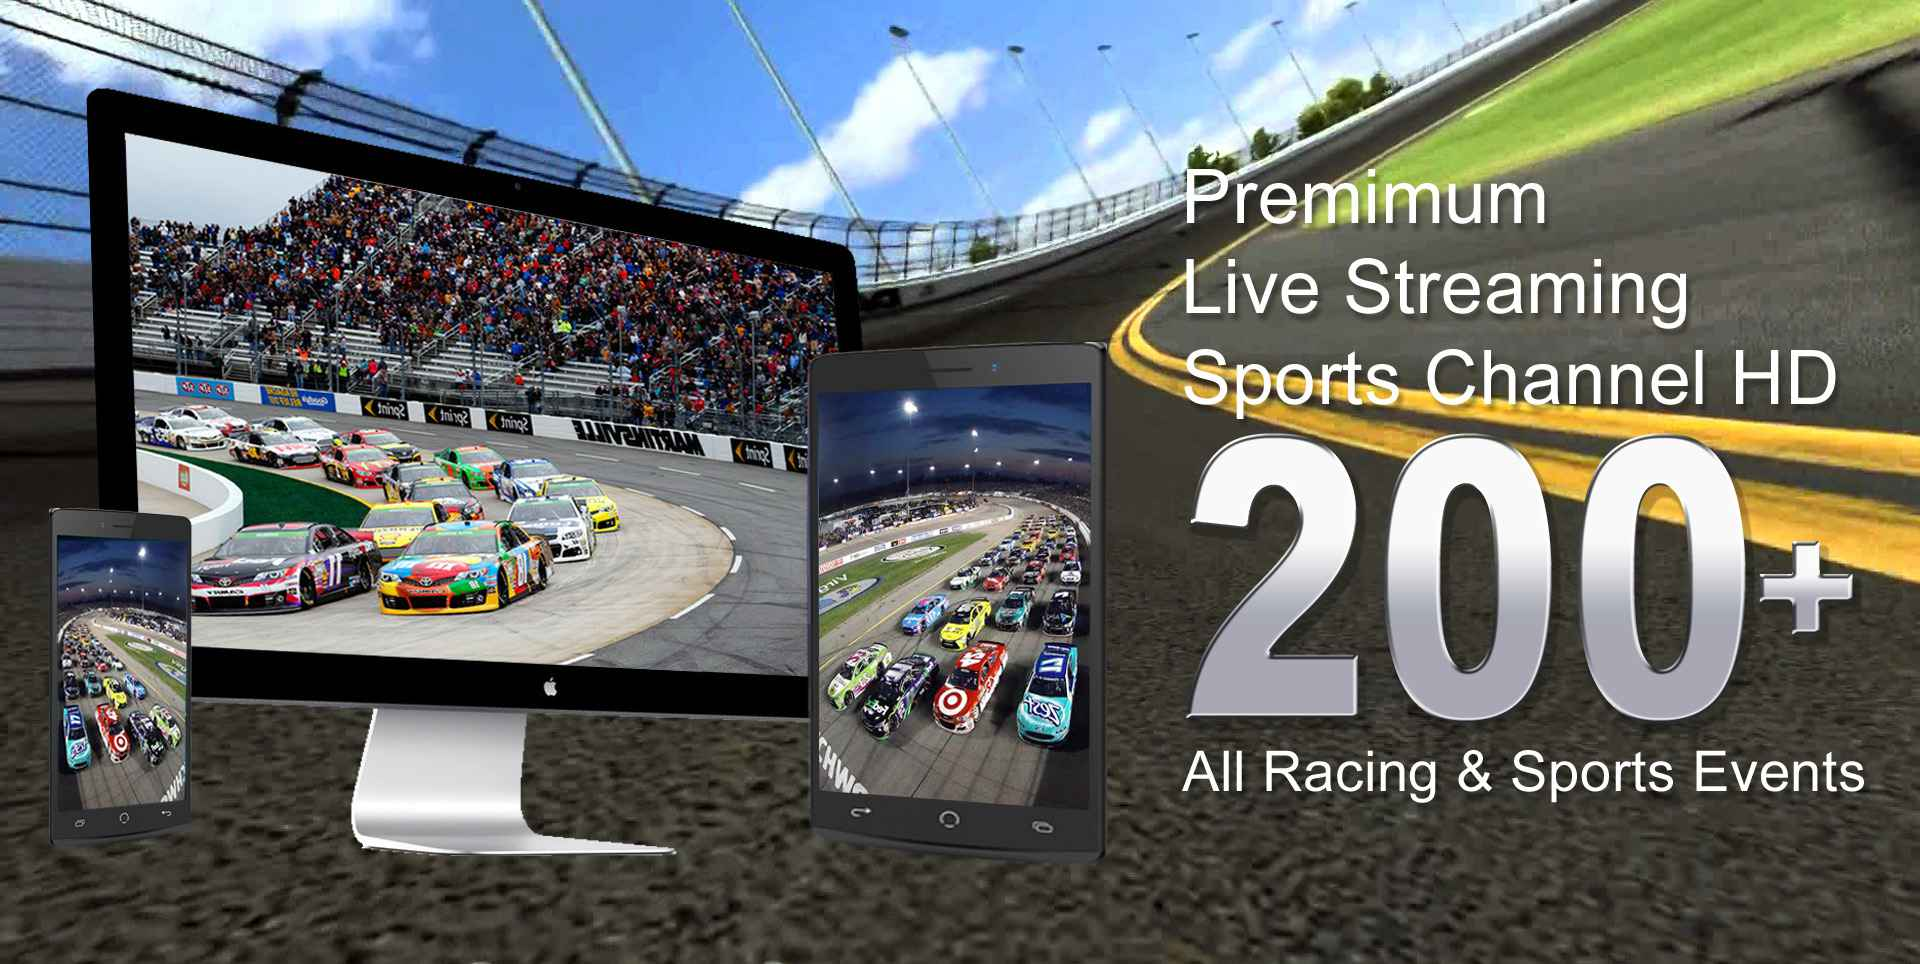 coca-cola-600-live-at-charlotte-motor-speedway